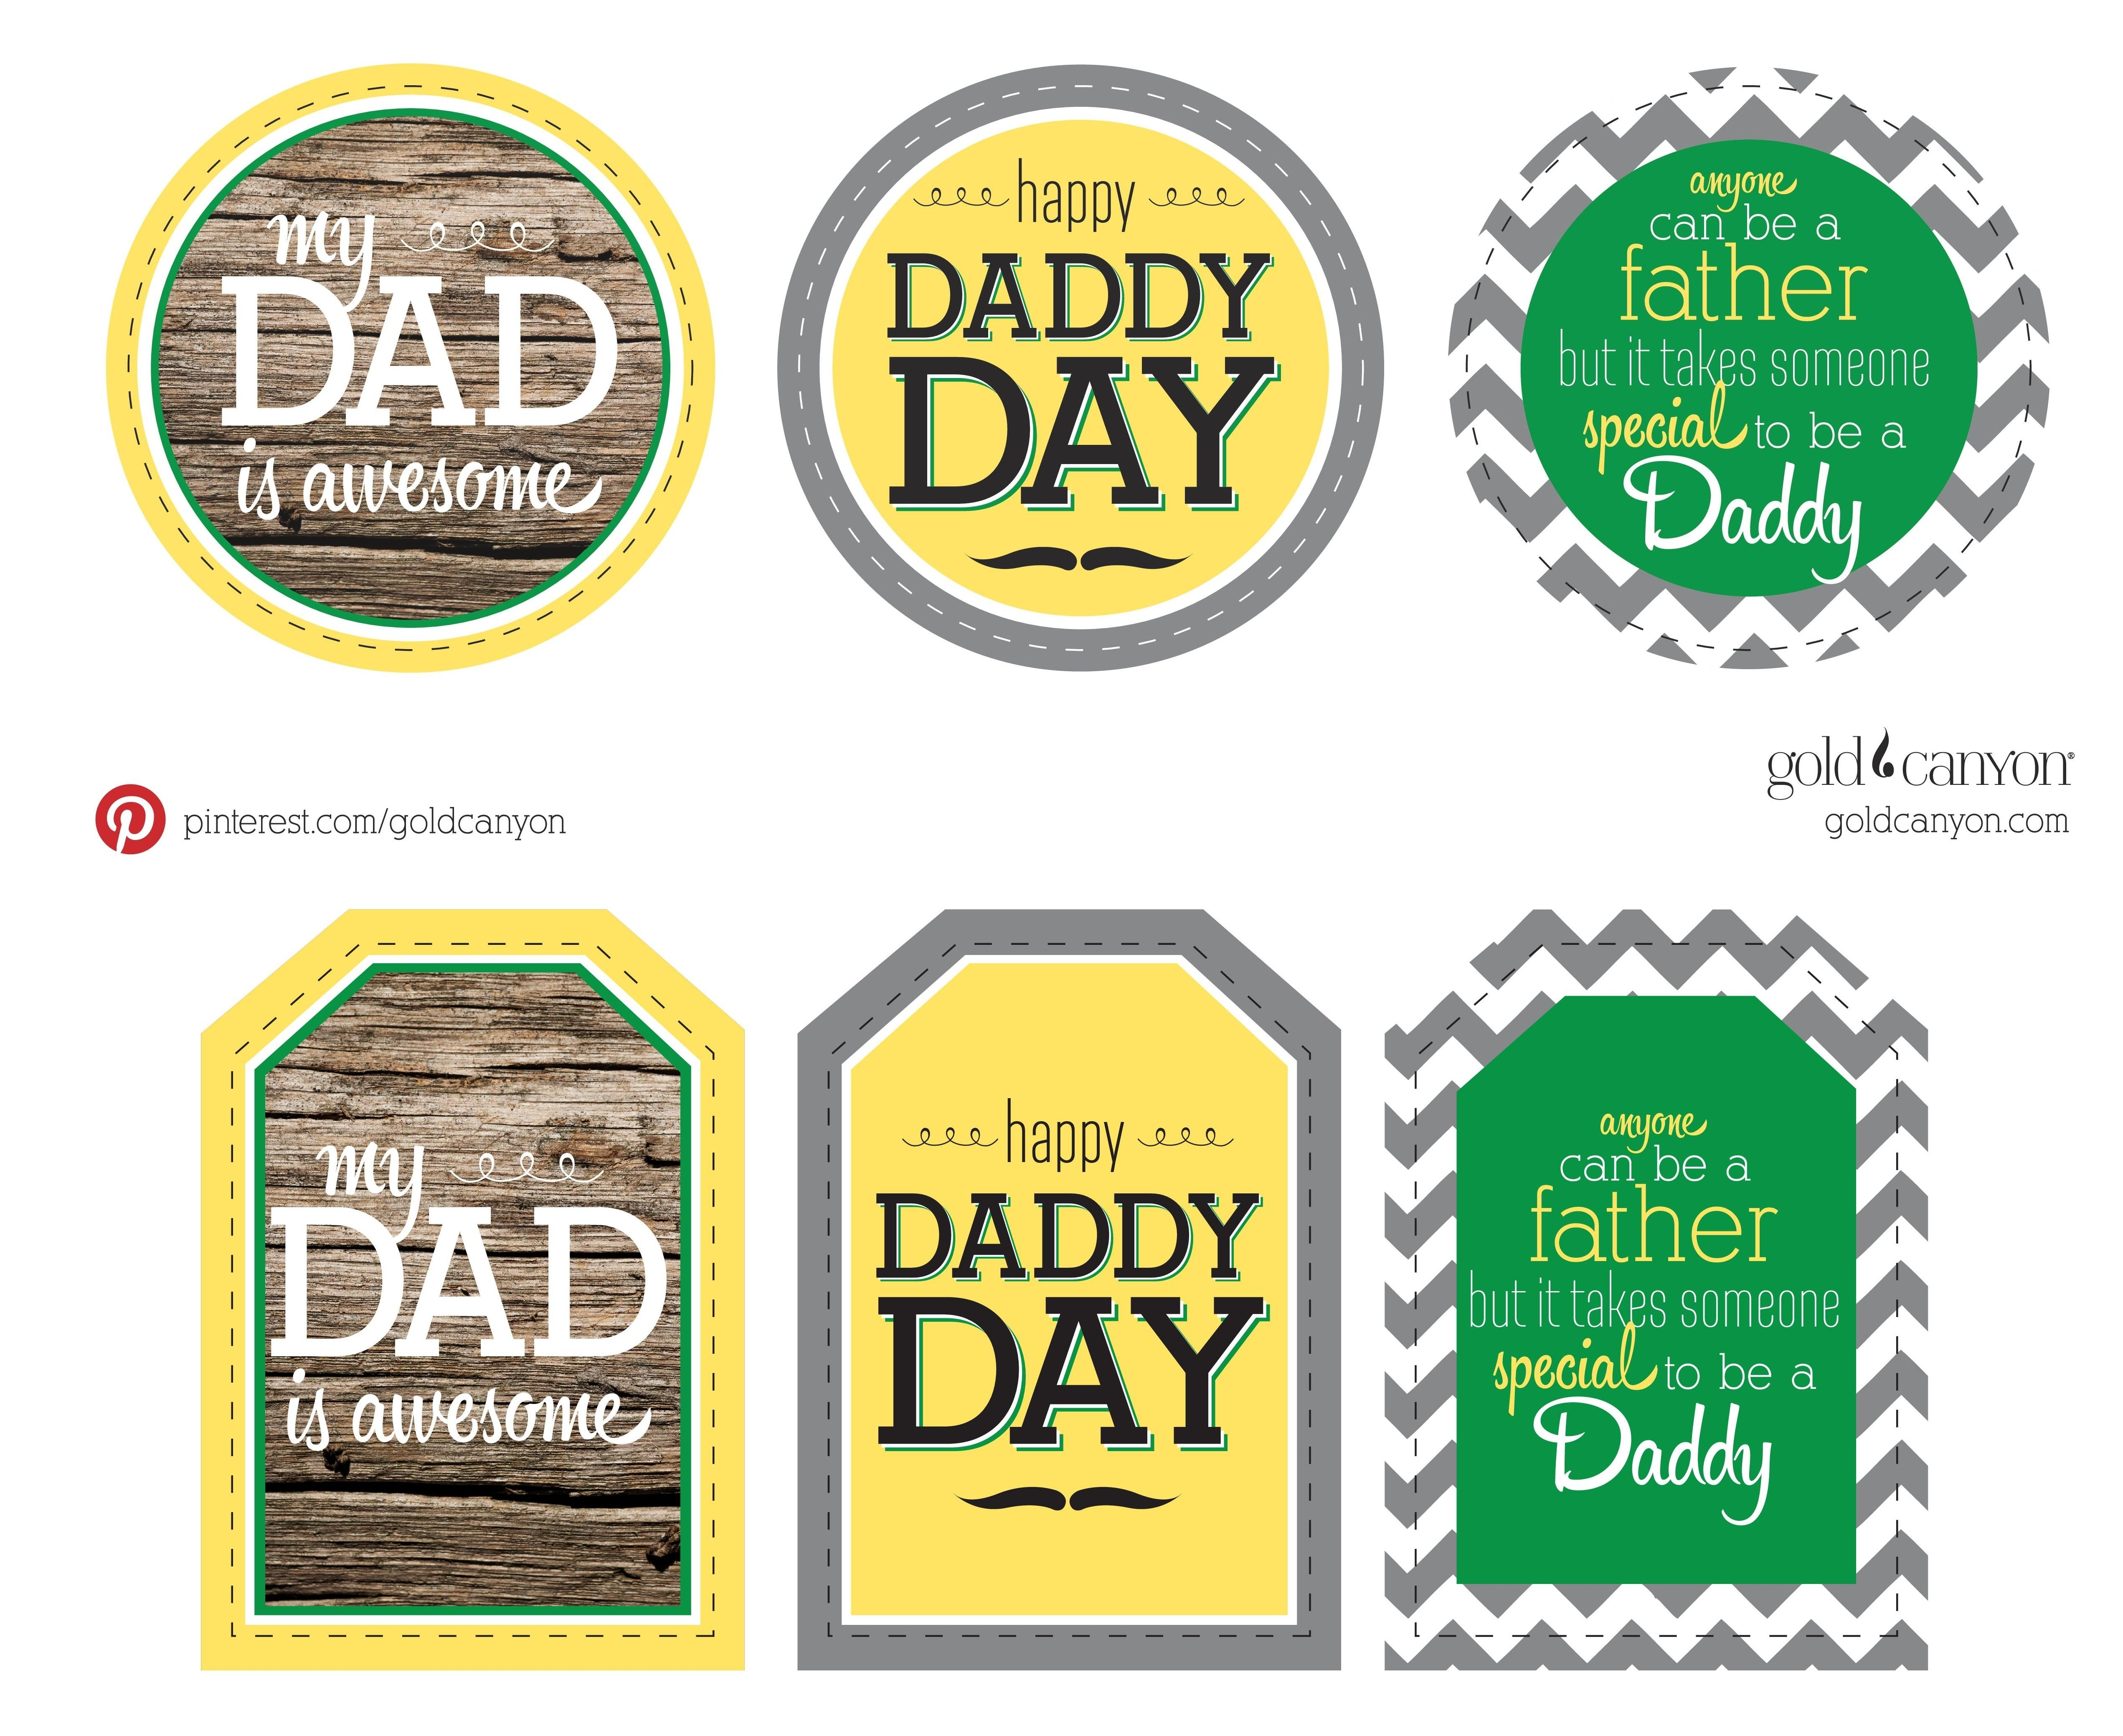 photograph about Free Printable Fathers Day Tags titled Free of charge Printable Present Tags for Dads Working day! Demonstrate your Daddy